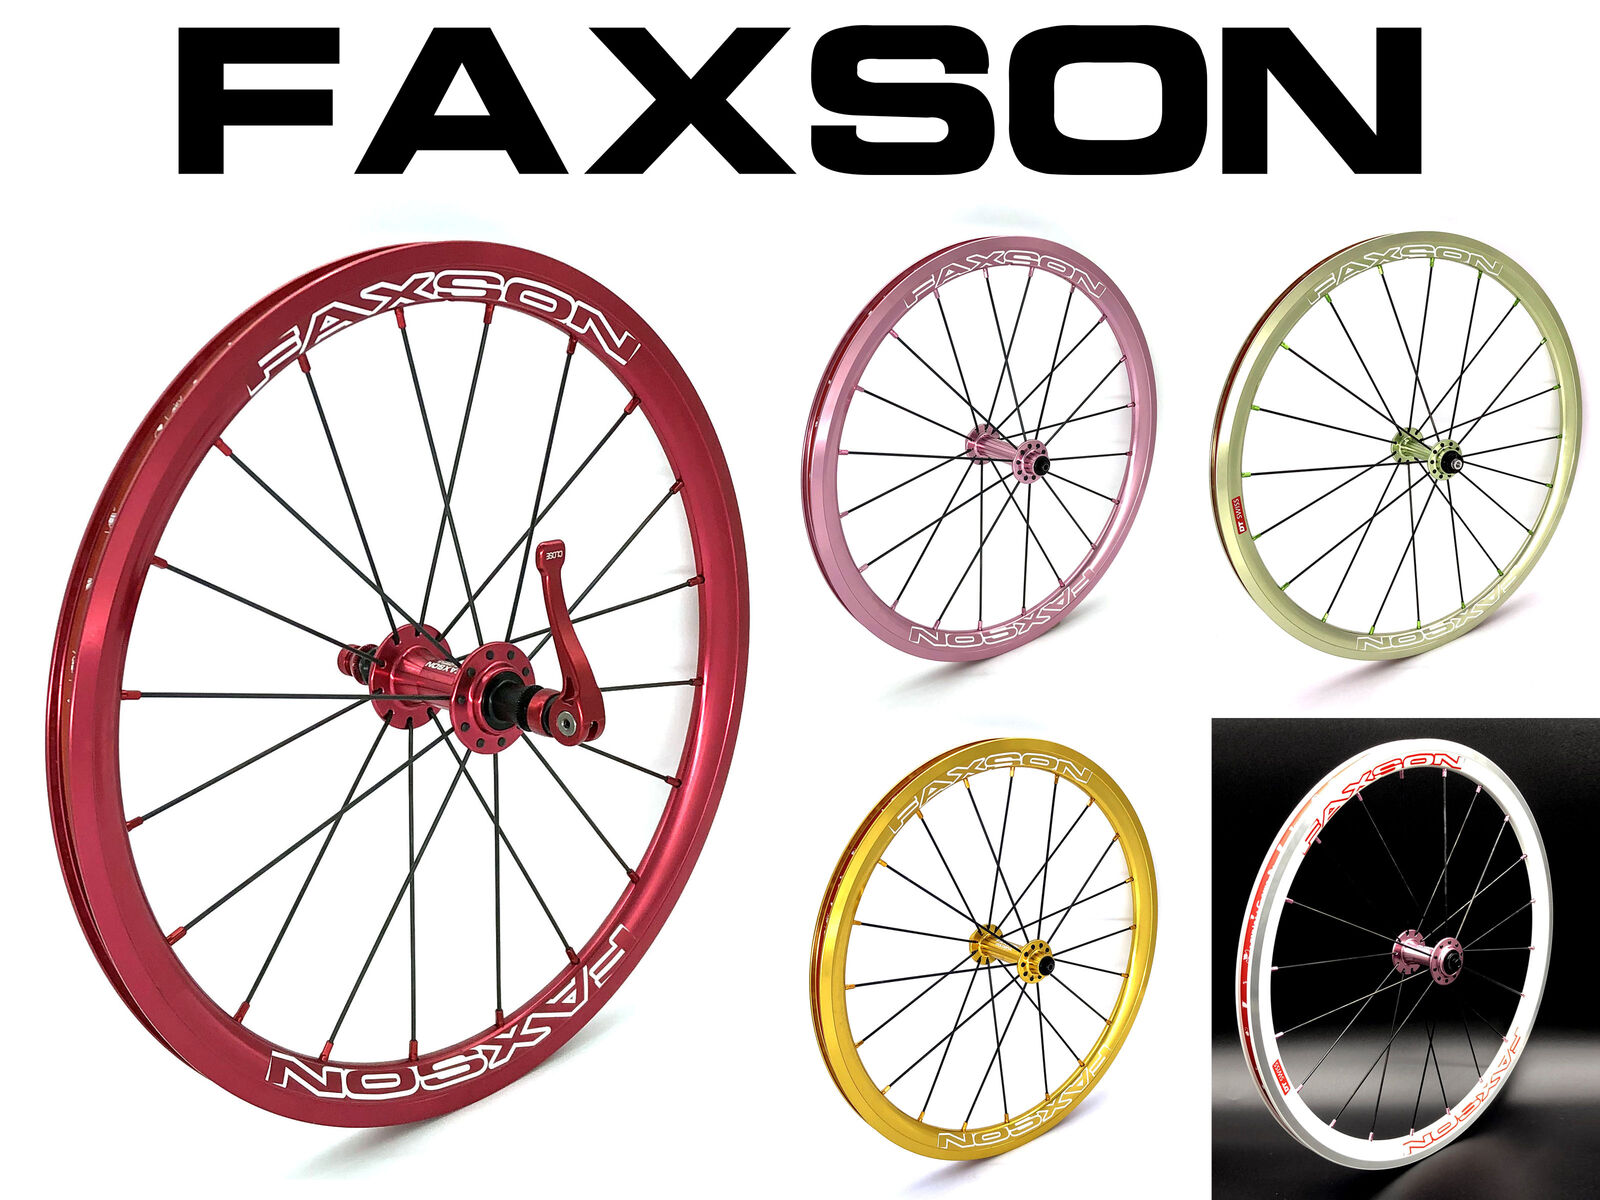 Faxson colorful Wheelset (Rim Brake) - 20 (406)   18 (355 Birdy)